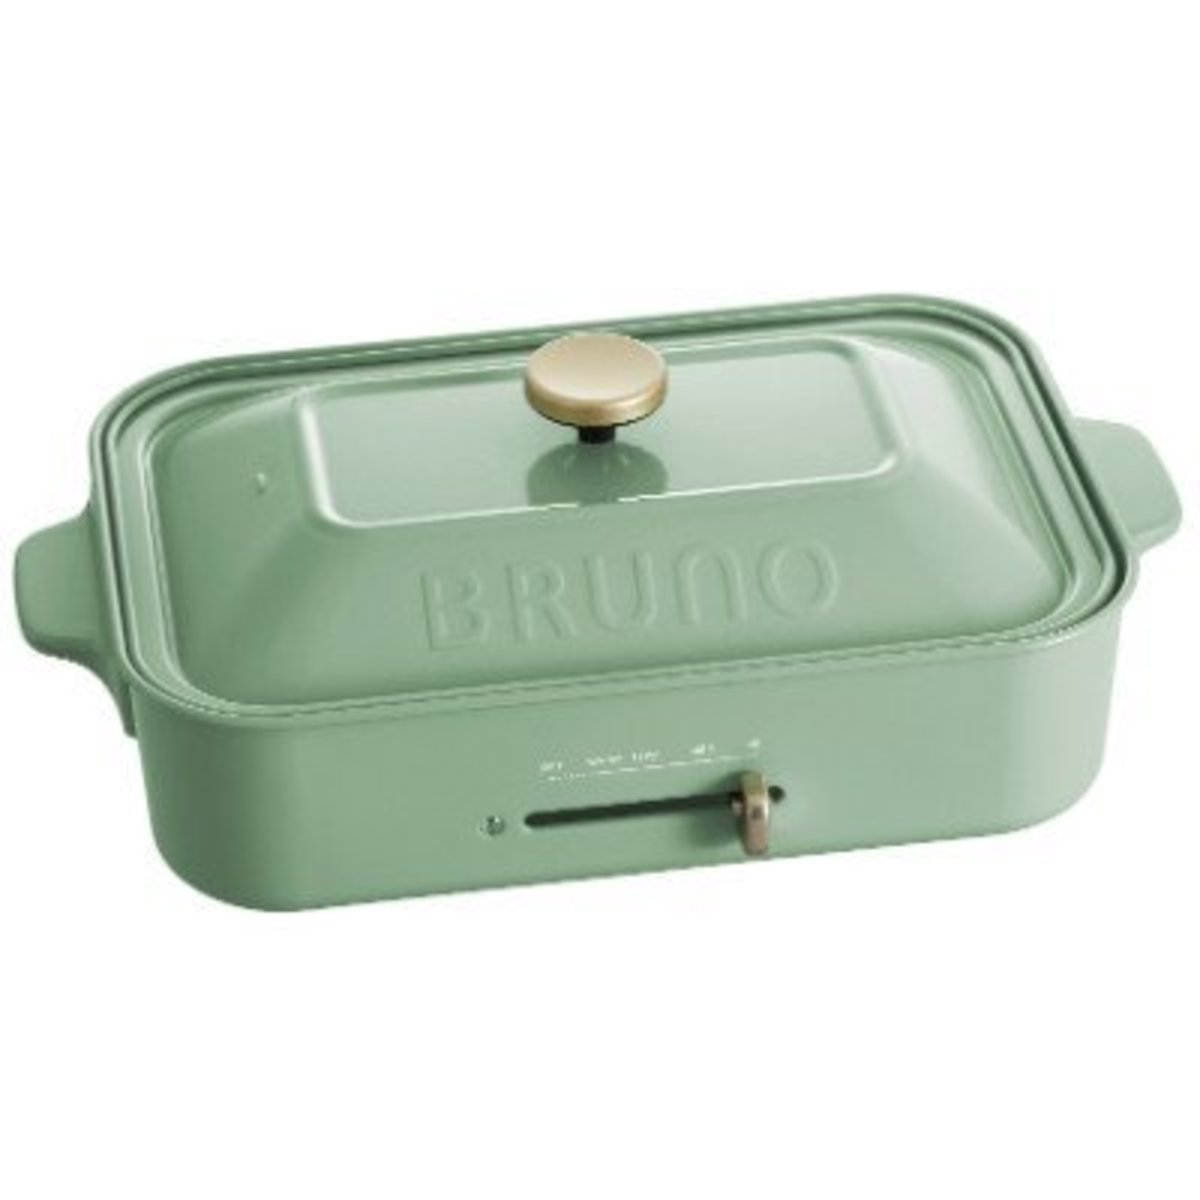 Compact Hot Plate 1200W - Smokey Green BOE021-SMGR